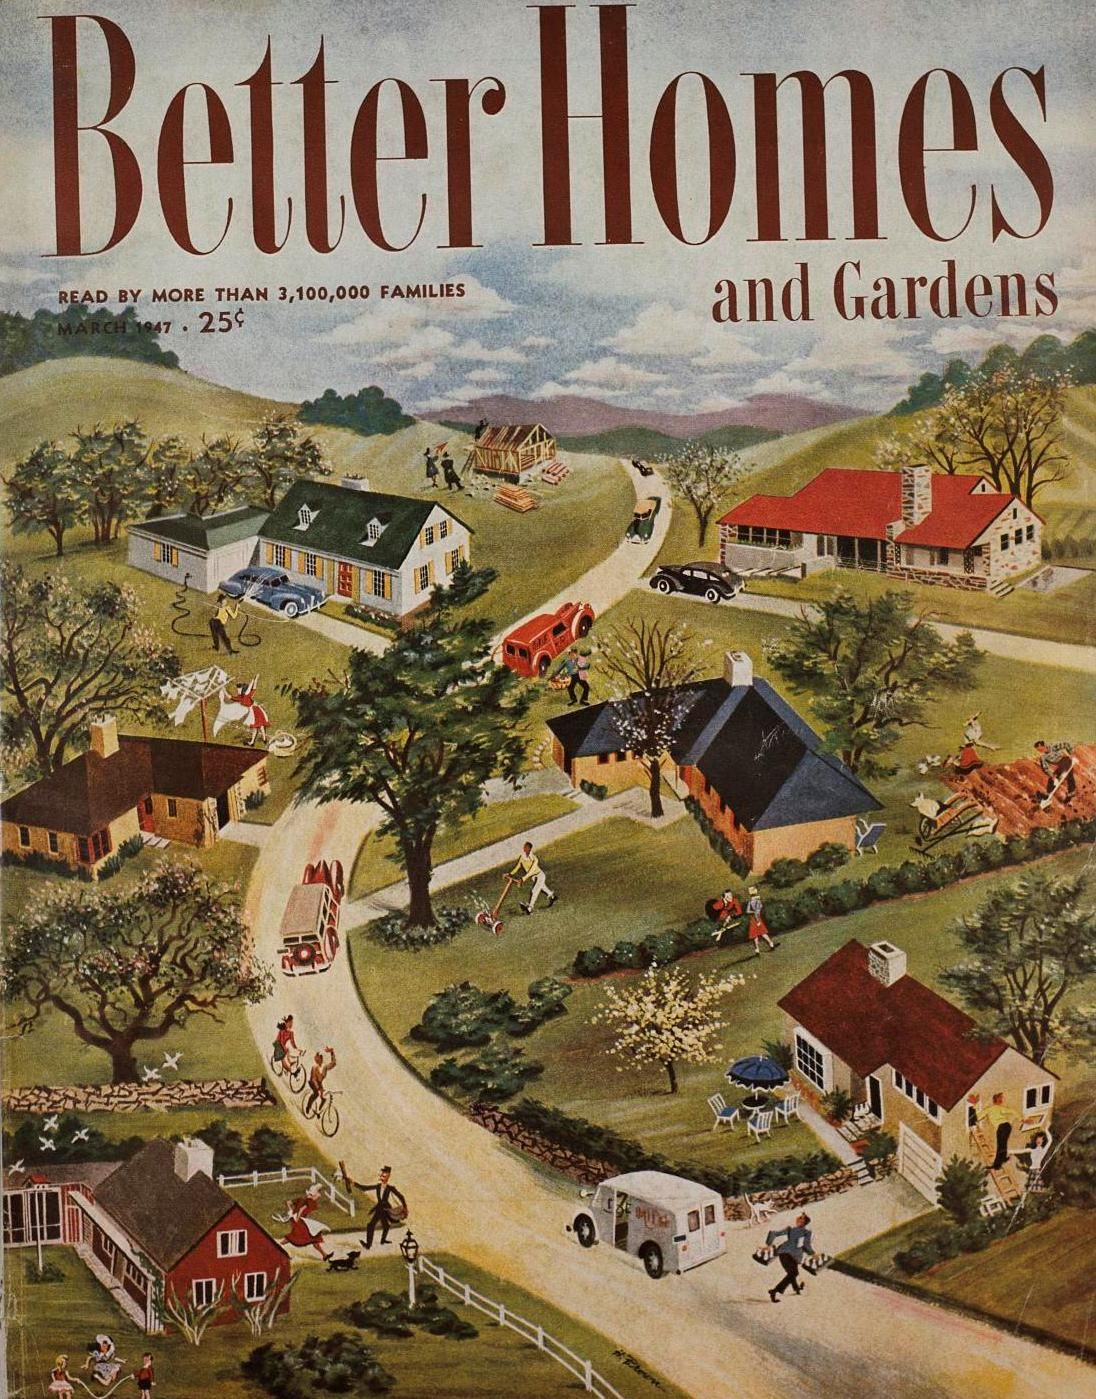 vintage bhg covers: march1947 - a special memory for me since this